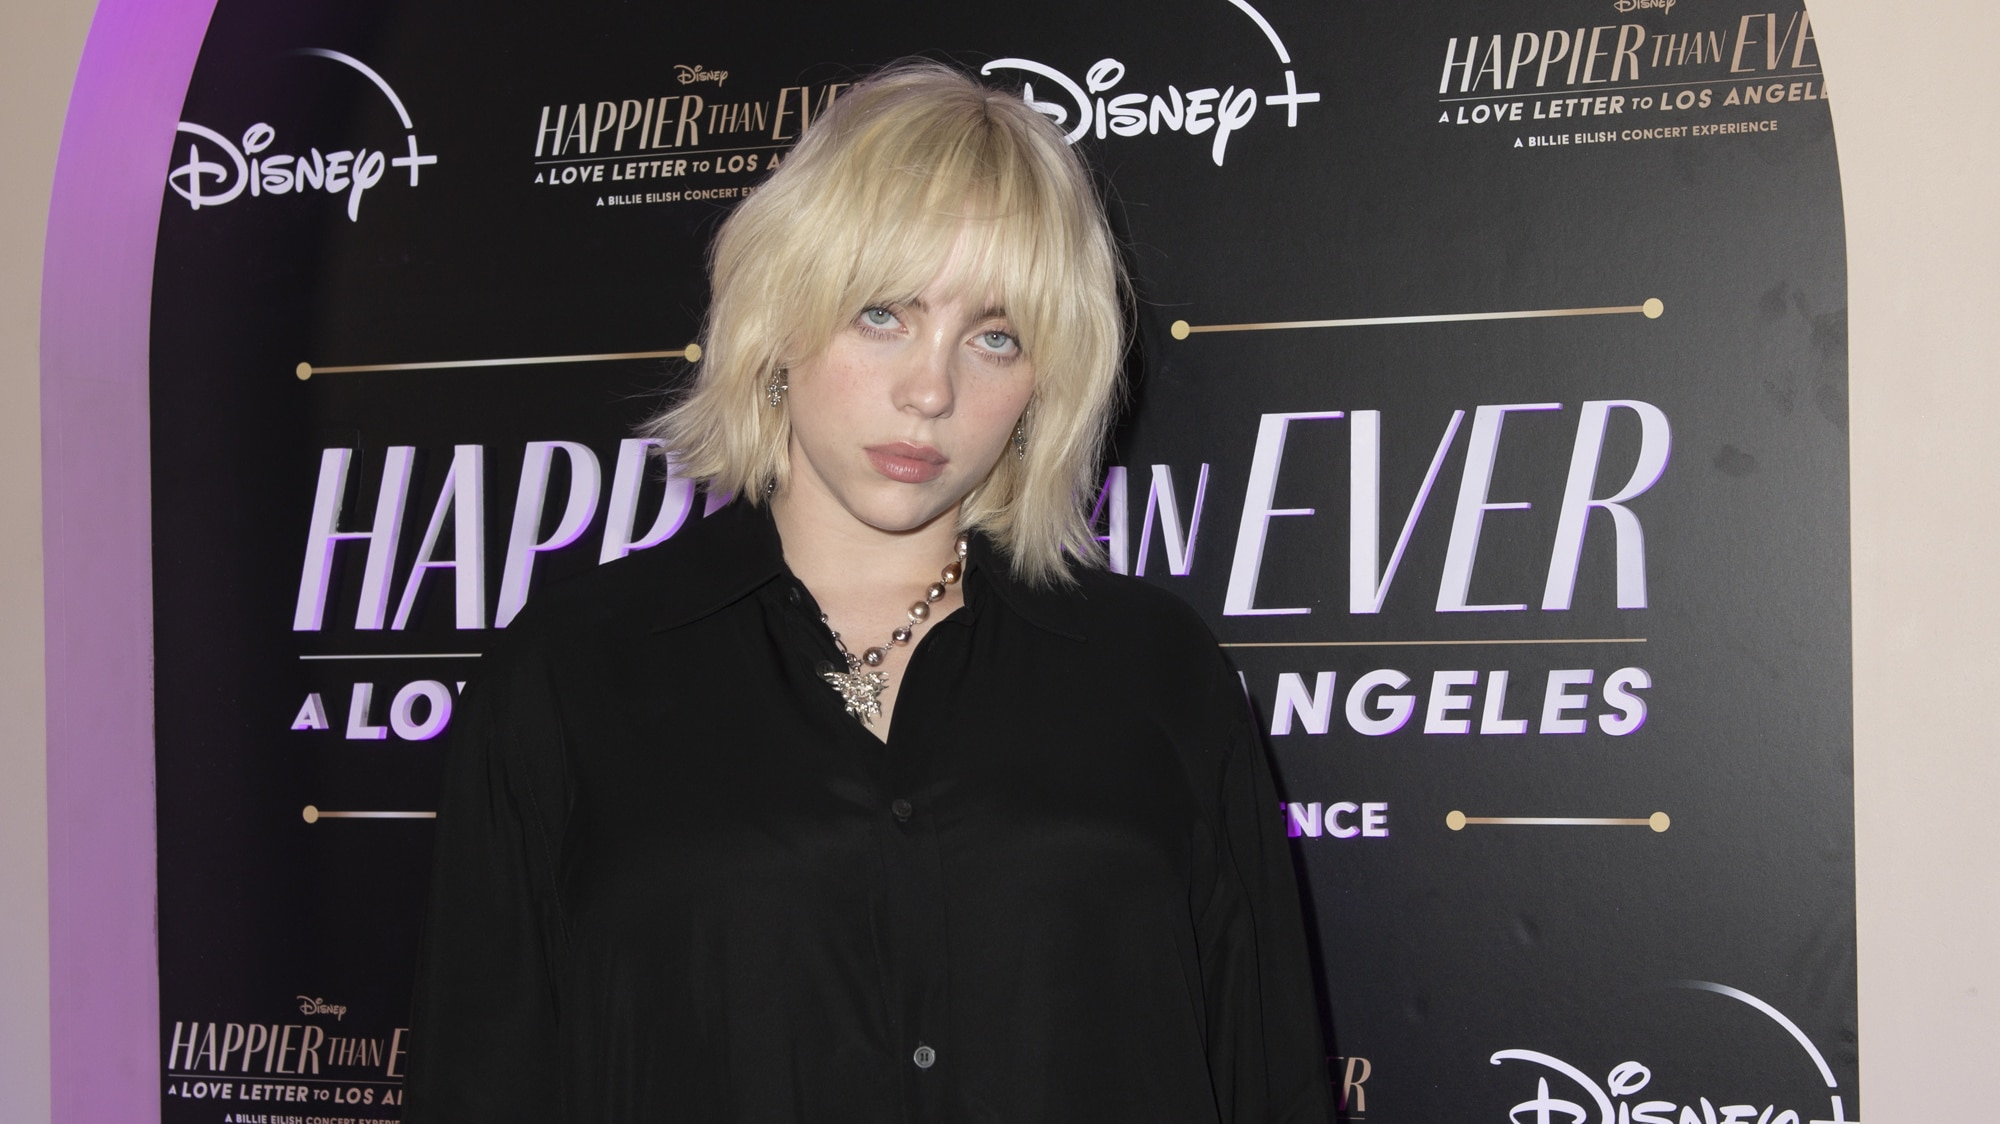 """HAPPIER THAN EVER: A LOVE LETTER TO LOS ANGELES - Stars celebrated at the drive-in world premiere of the Disney+ original film, """"Happier Than Ever: A Love Letter to Los Angeles,"""" a Billie Eilish concert experience, at The Grove in Los Angeles, Calif., Monday, August 30, 2021. (Disney/Kyusung Gong) BILLIE EILISH"""